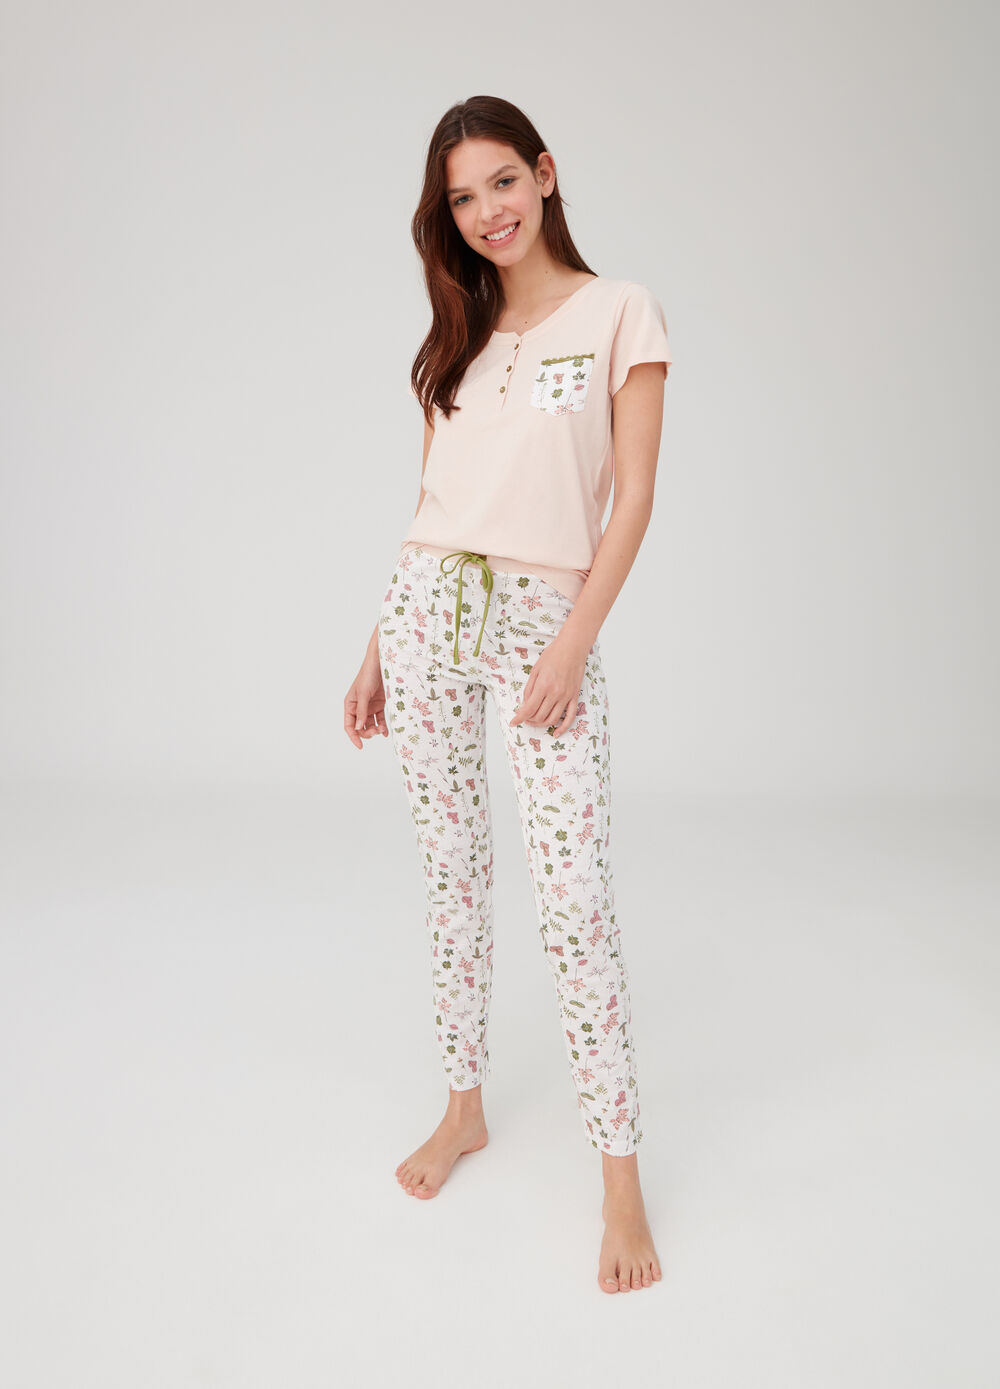 Floral pyjamas with T-shirt and trousers